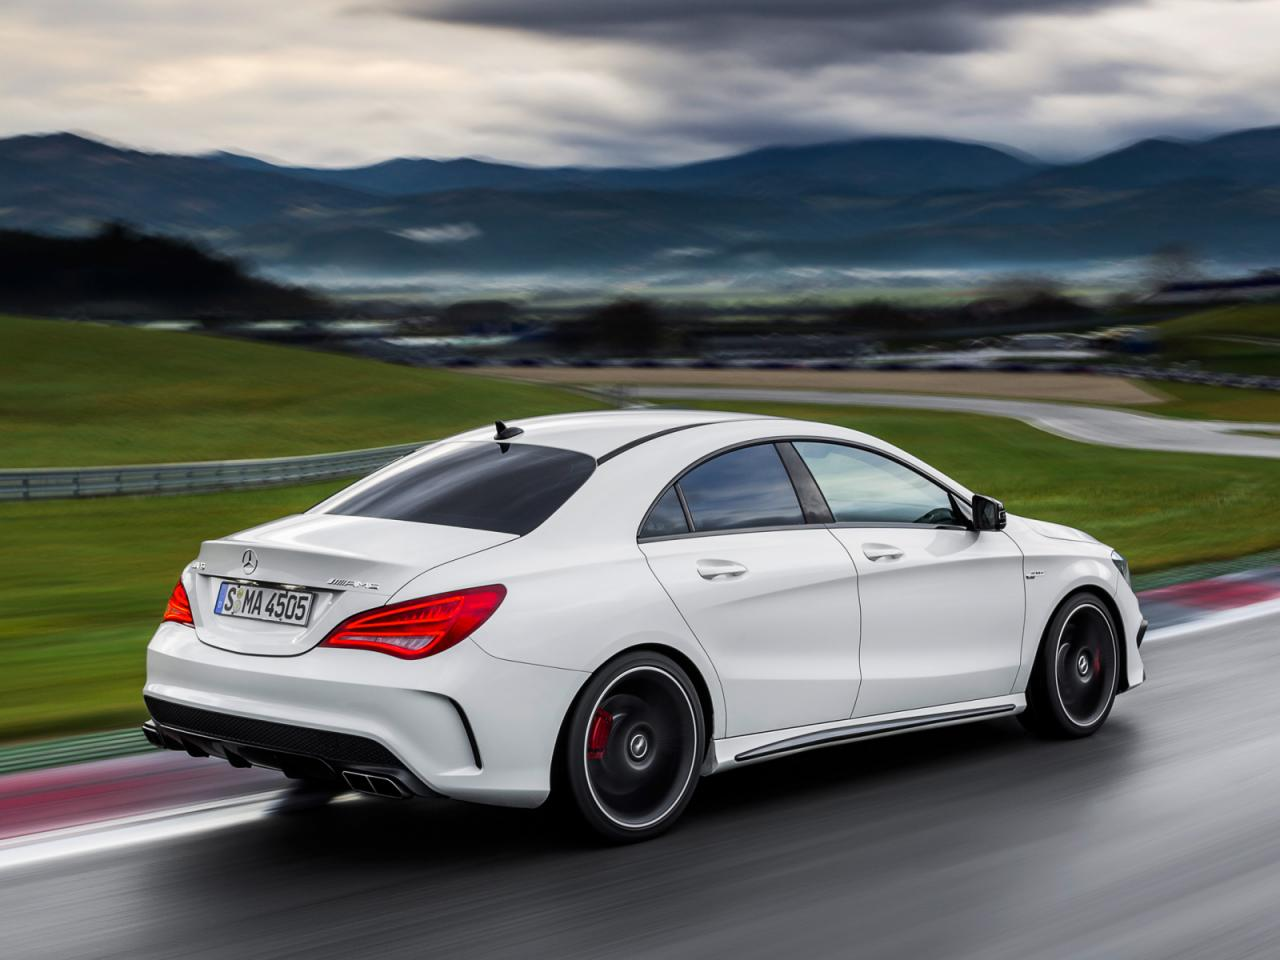 Mercedes benz cla 45 amg revealed ahead of new york debut for Mercedes benze cla